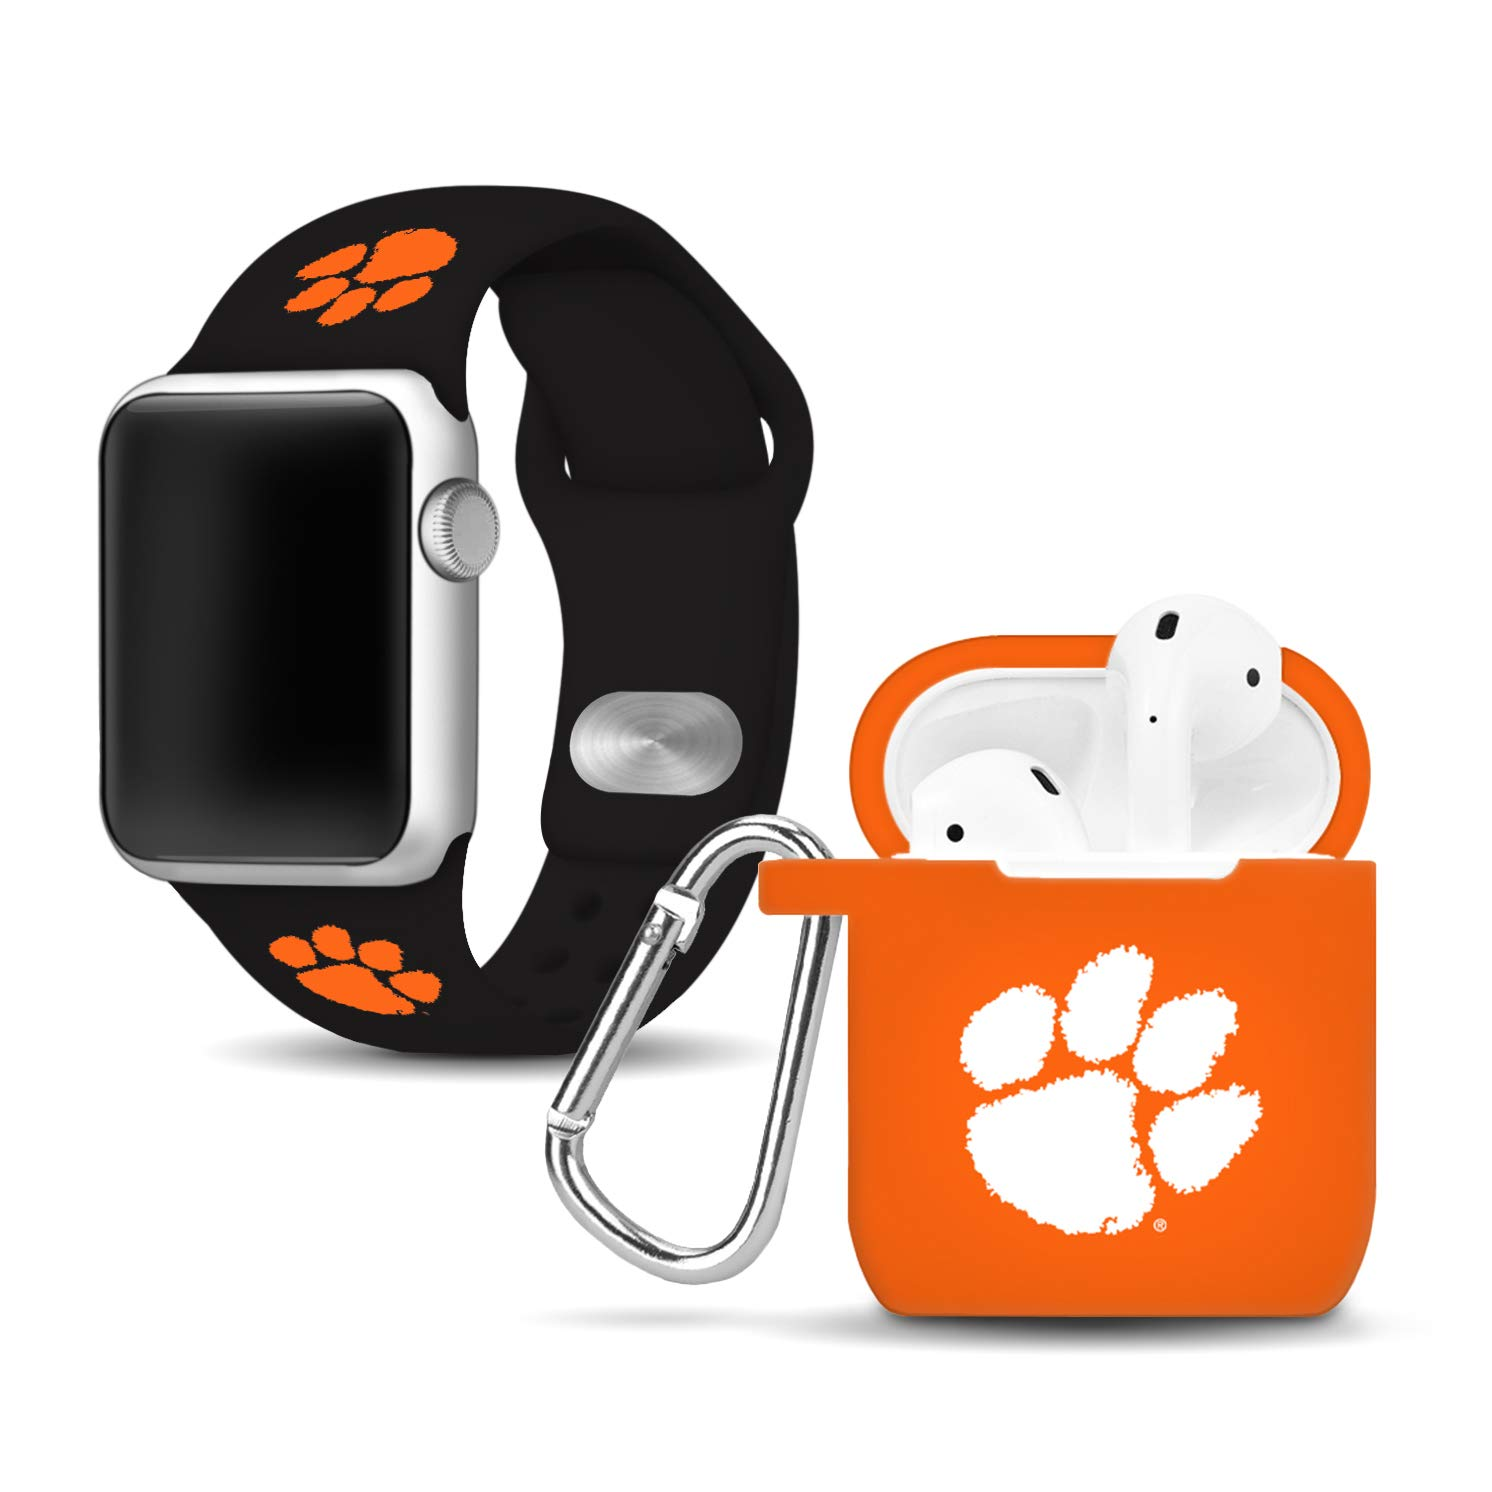 Affinity Bands Clemson Tigers Silicone Watch Band and Case Cover Combo Compatible with Apple Watch and AirPod Case by Affinity Bands